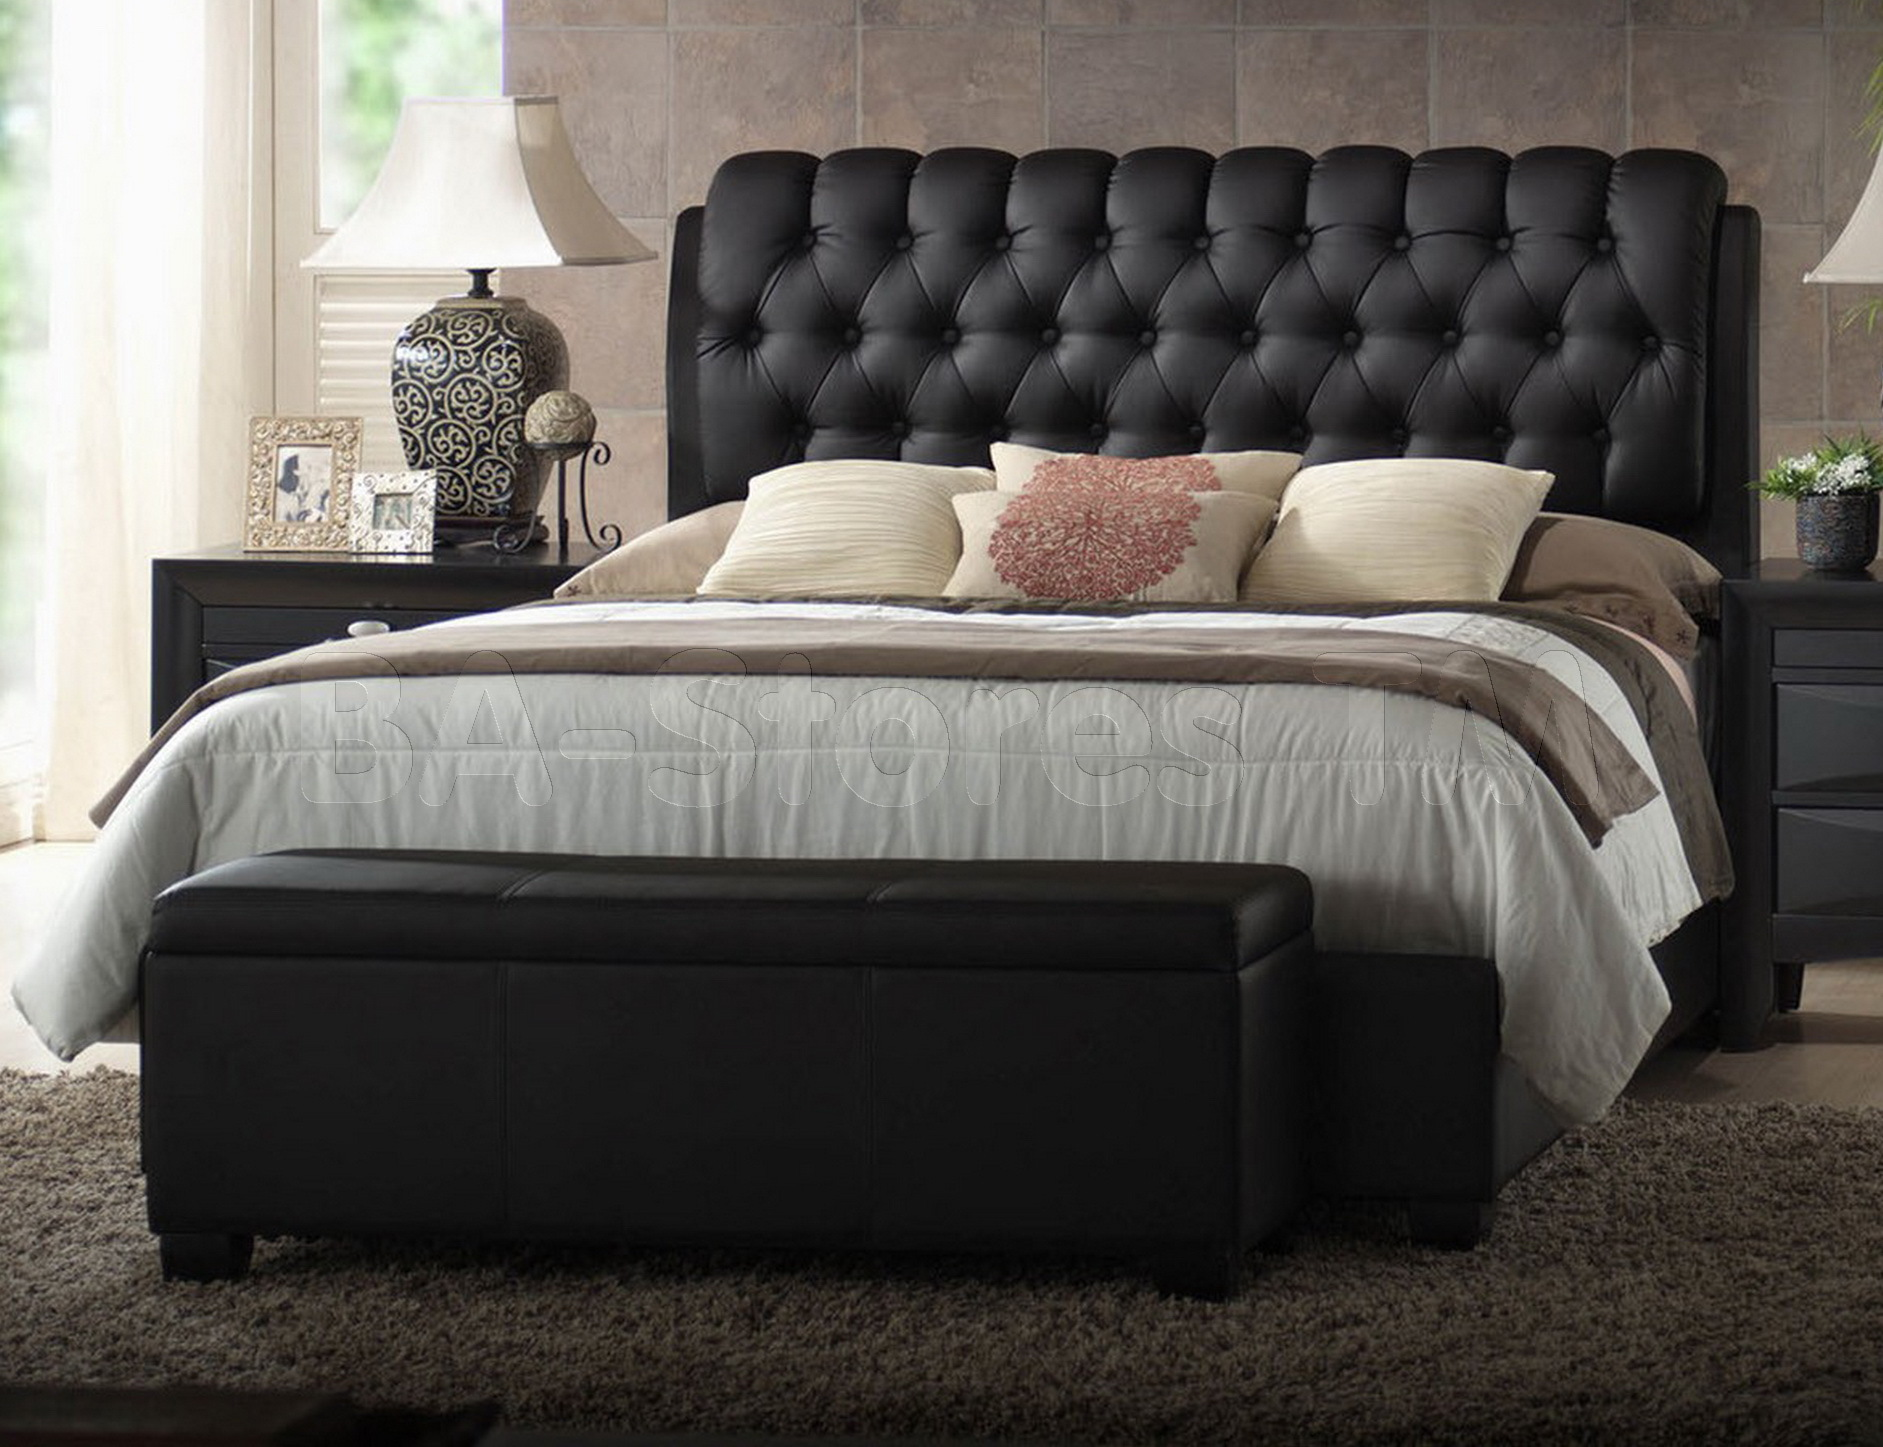 Amazing quilted headboard with pillows and queen bed size platform decorating combined with night lamp and sidetable